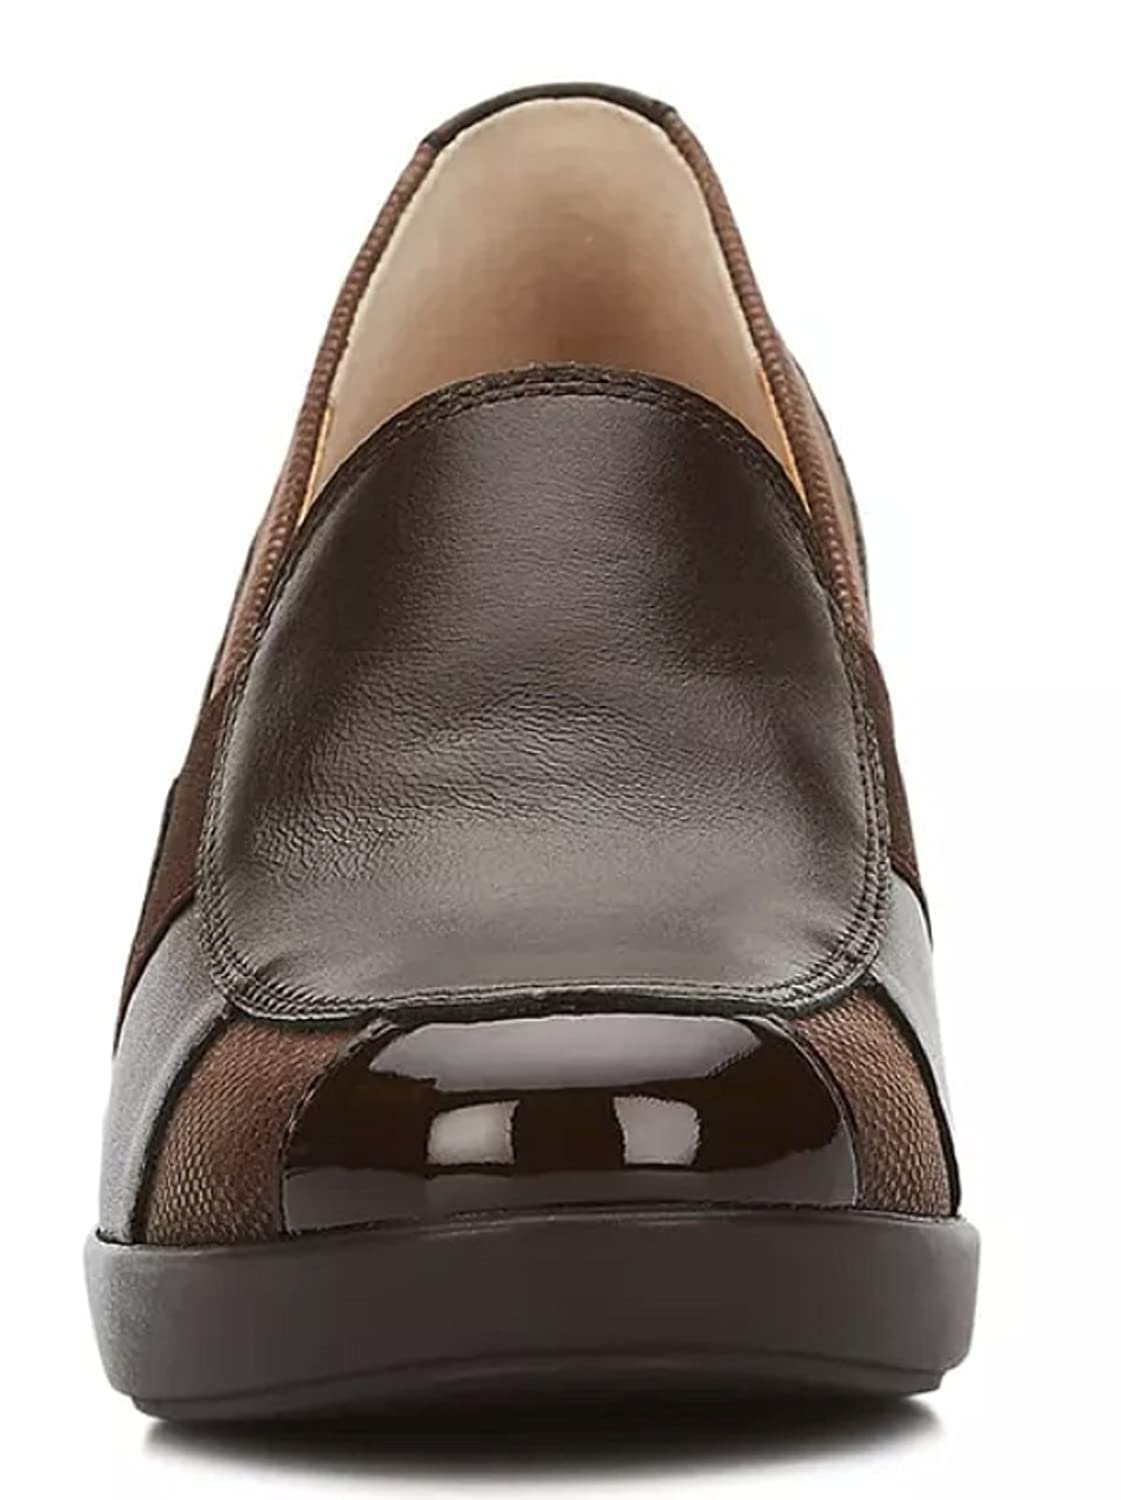 Andrea Shoes Comfort Women's Genuine Textured Leather Mid Wedge B079SXZMM3 9.5 B(M) US|Brown